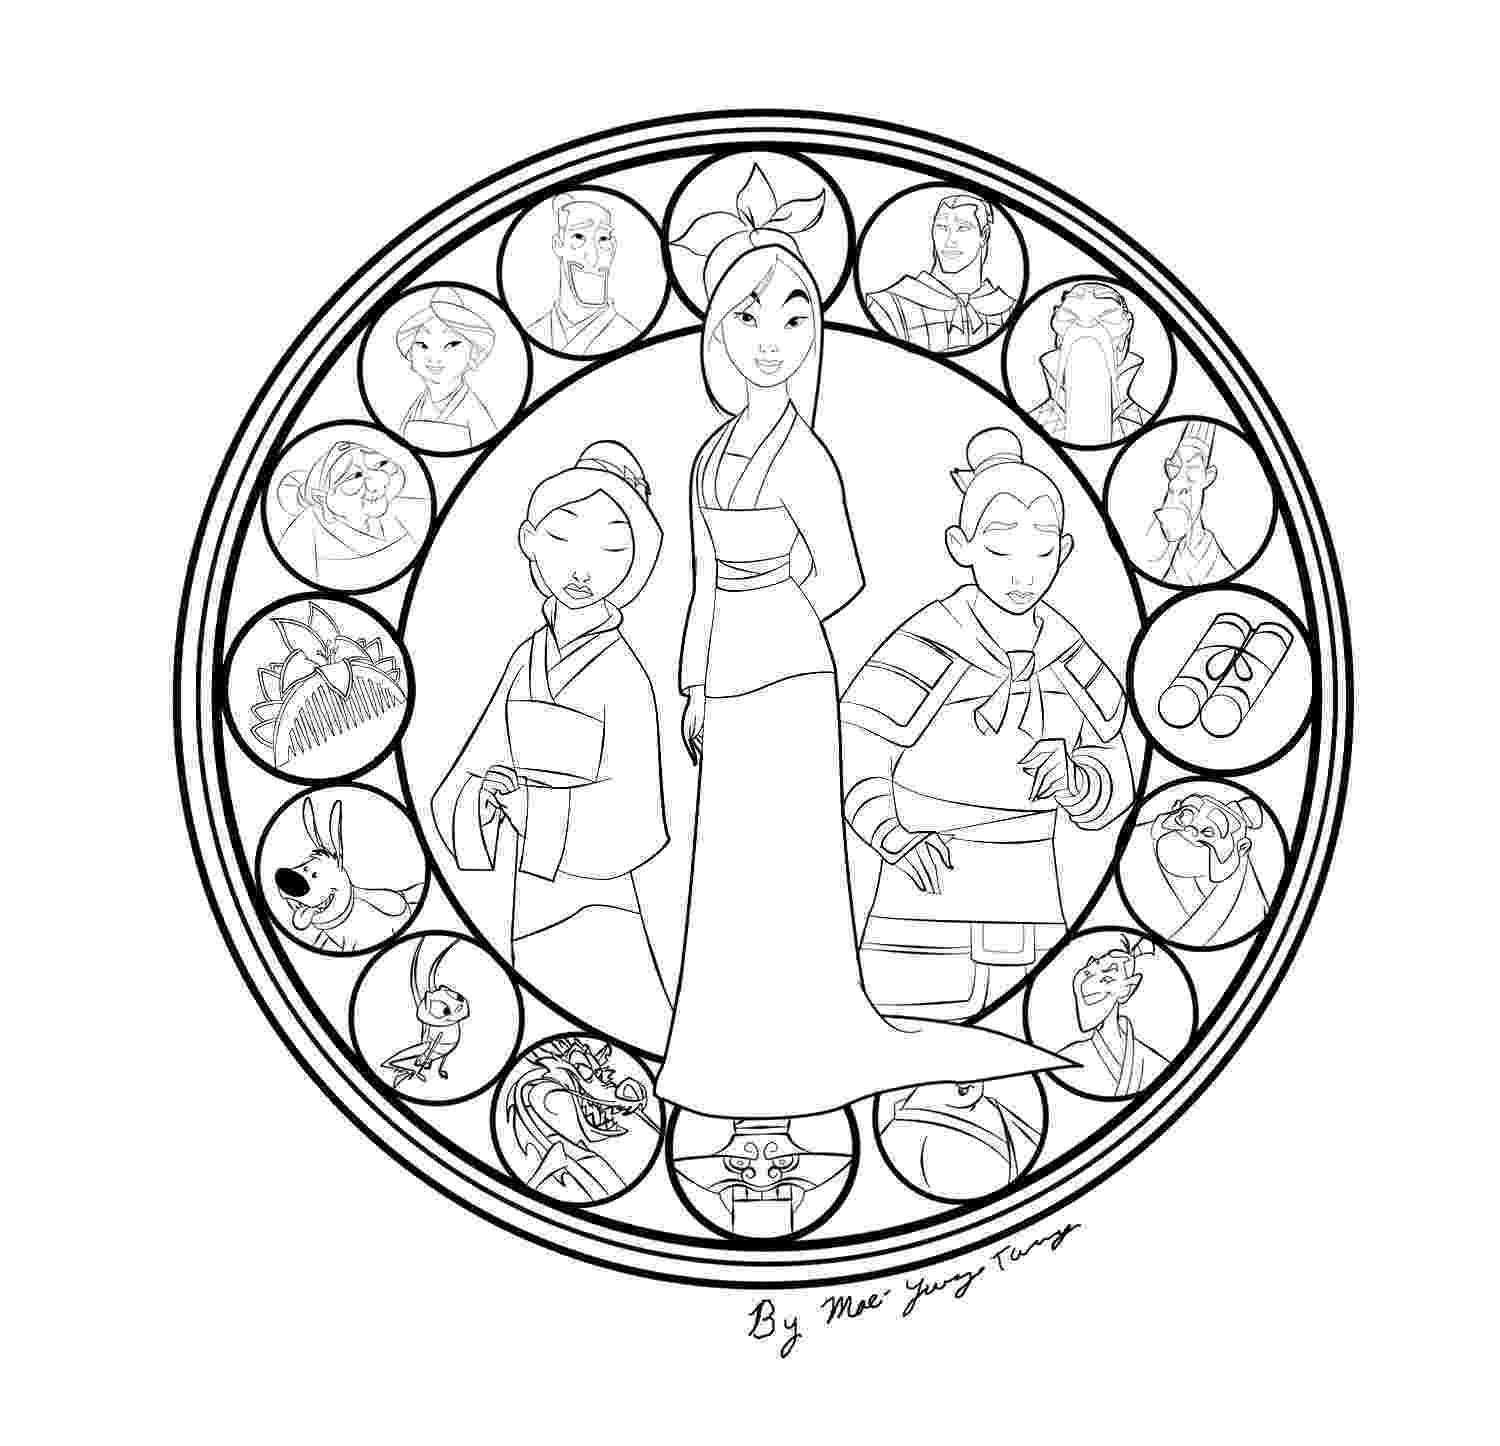 stained glass pictures to color stained glass window coloring pages download and print for glass color pictures to stained